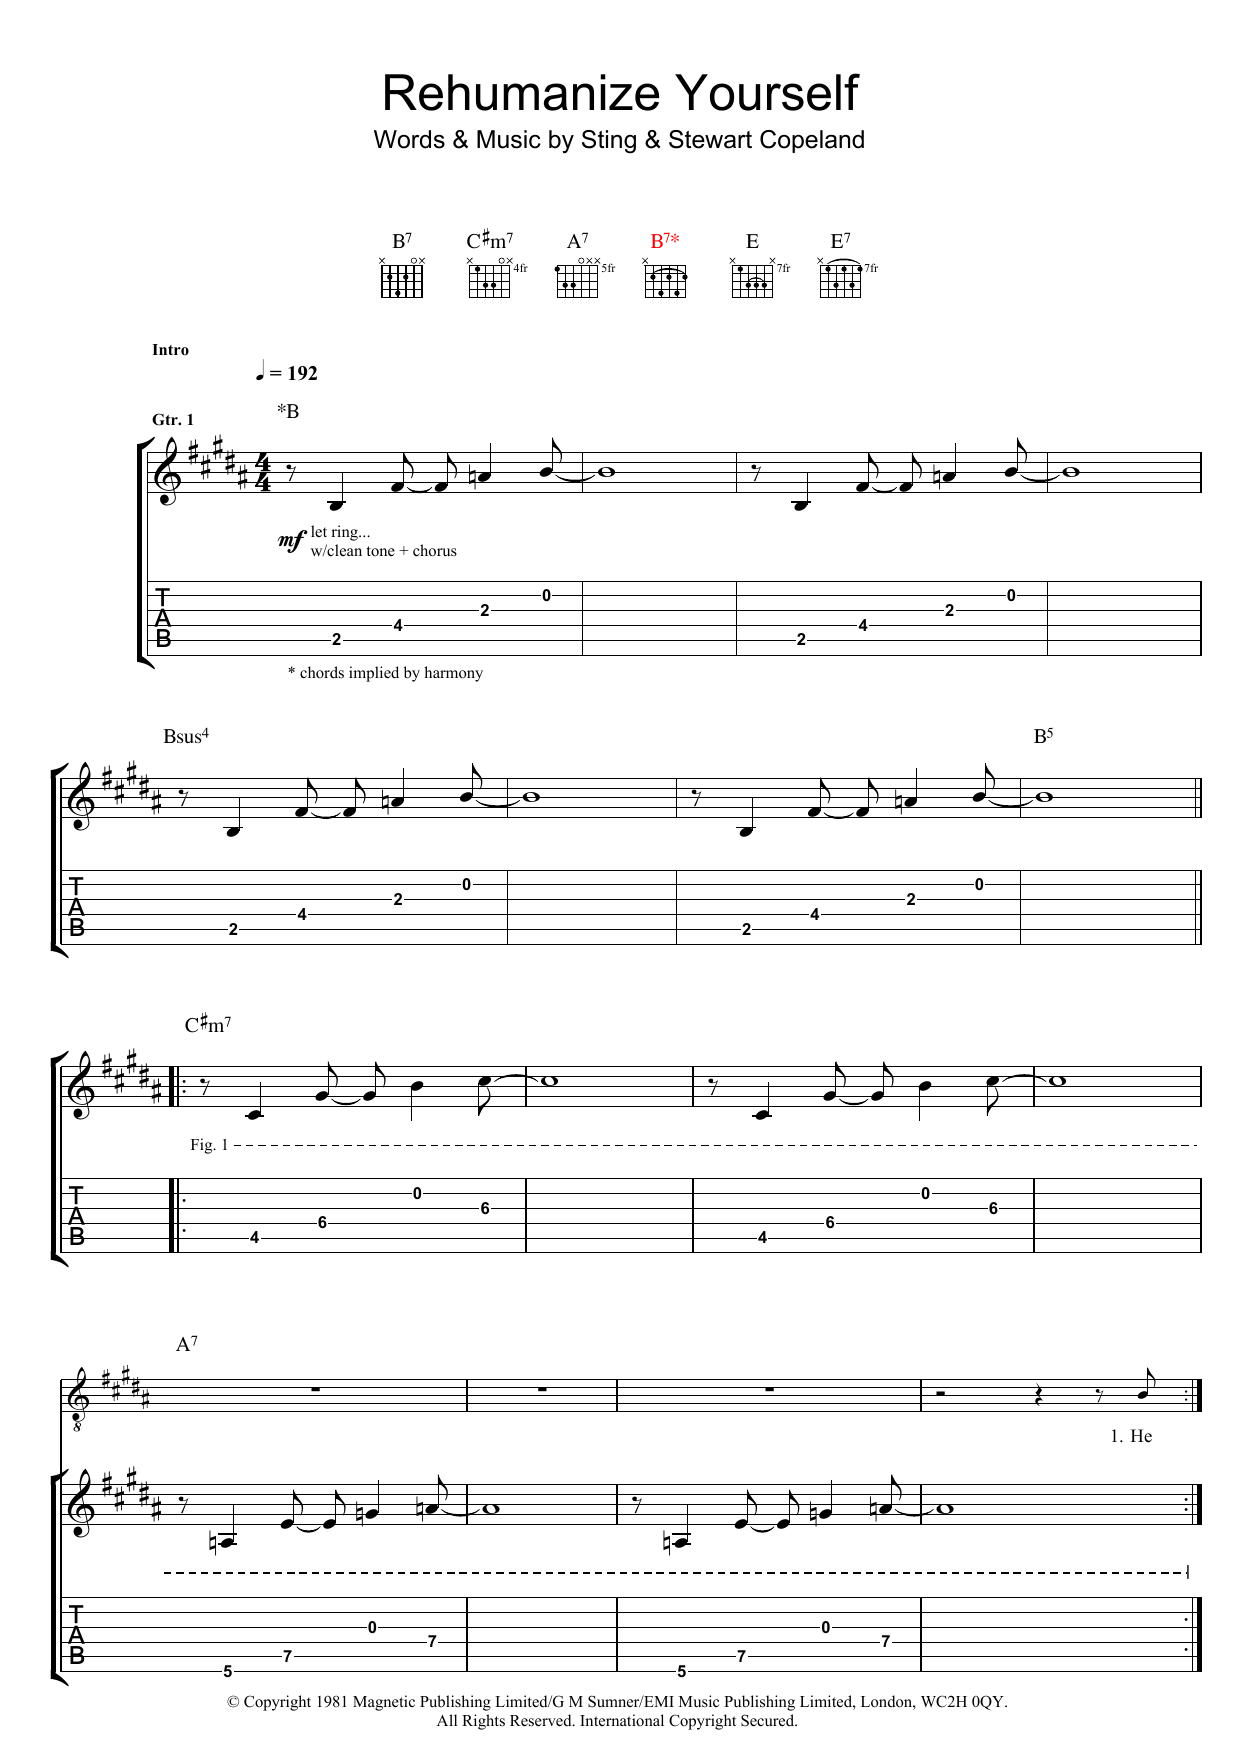 Rehumanize Yourself Sheet Music